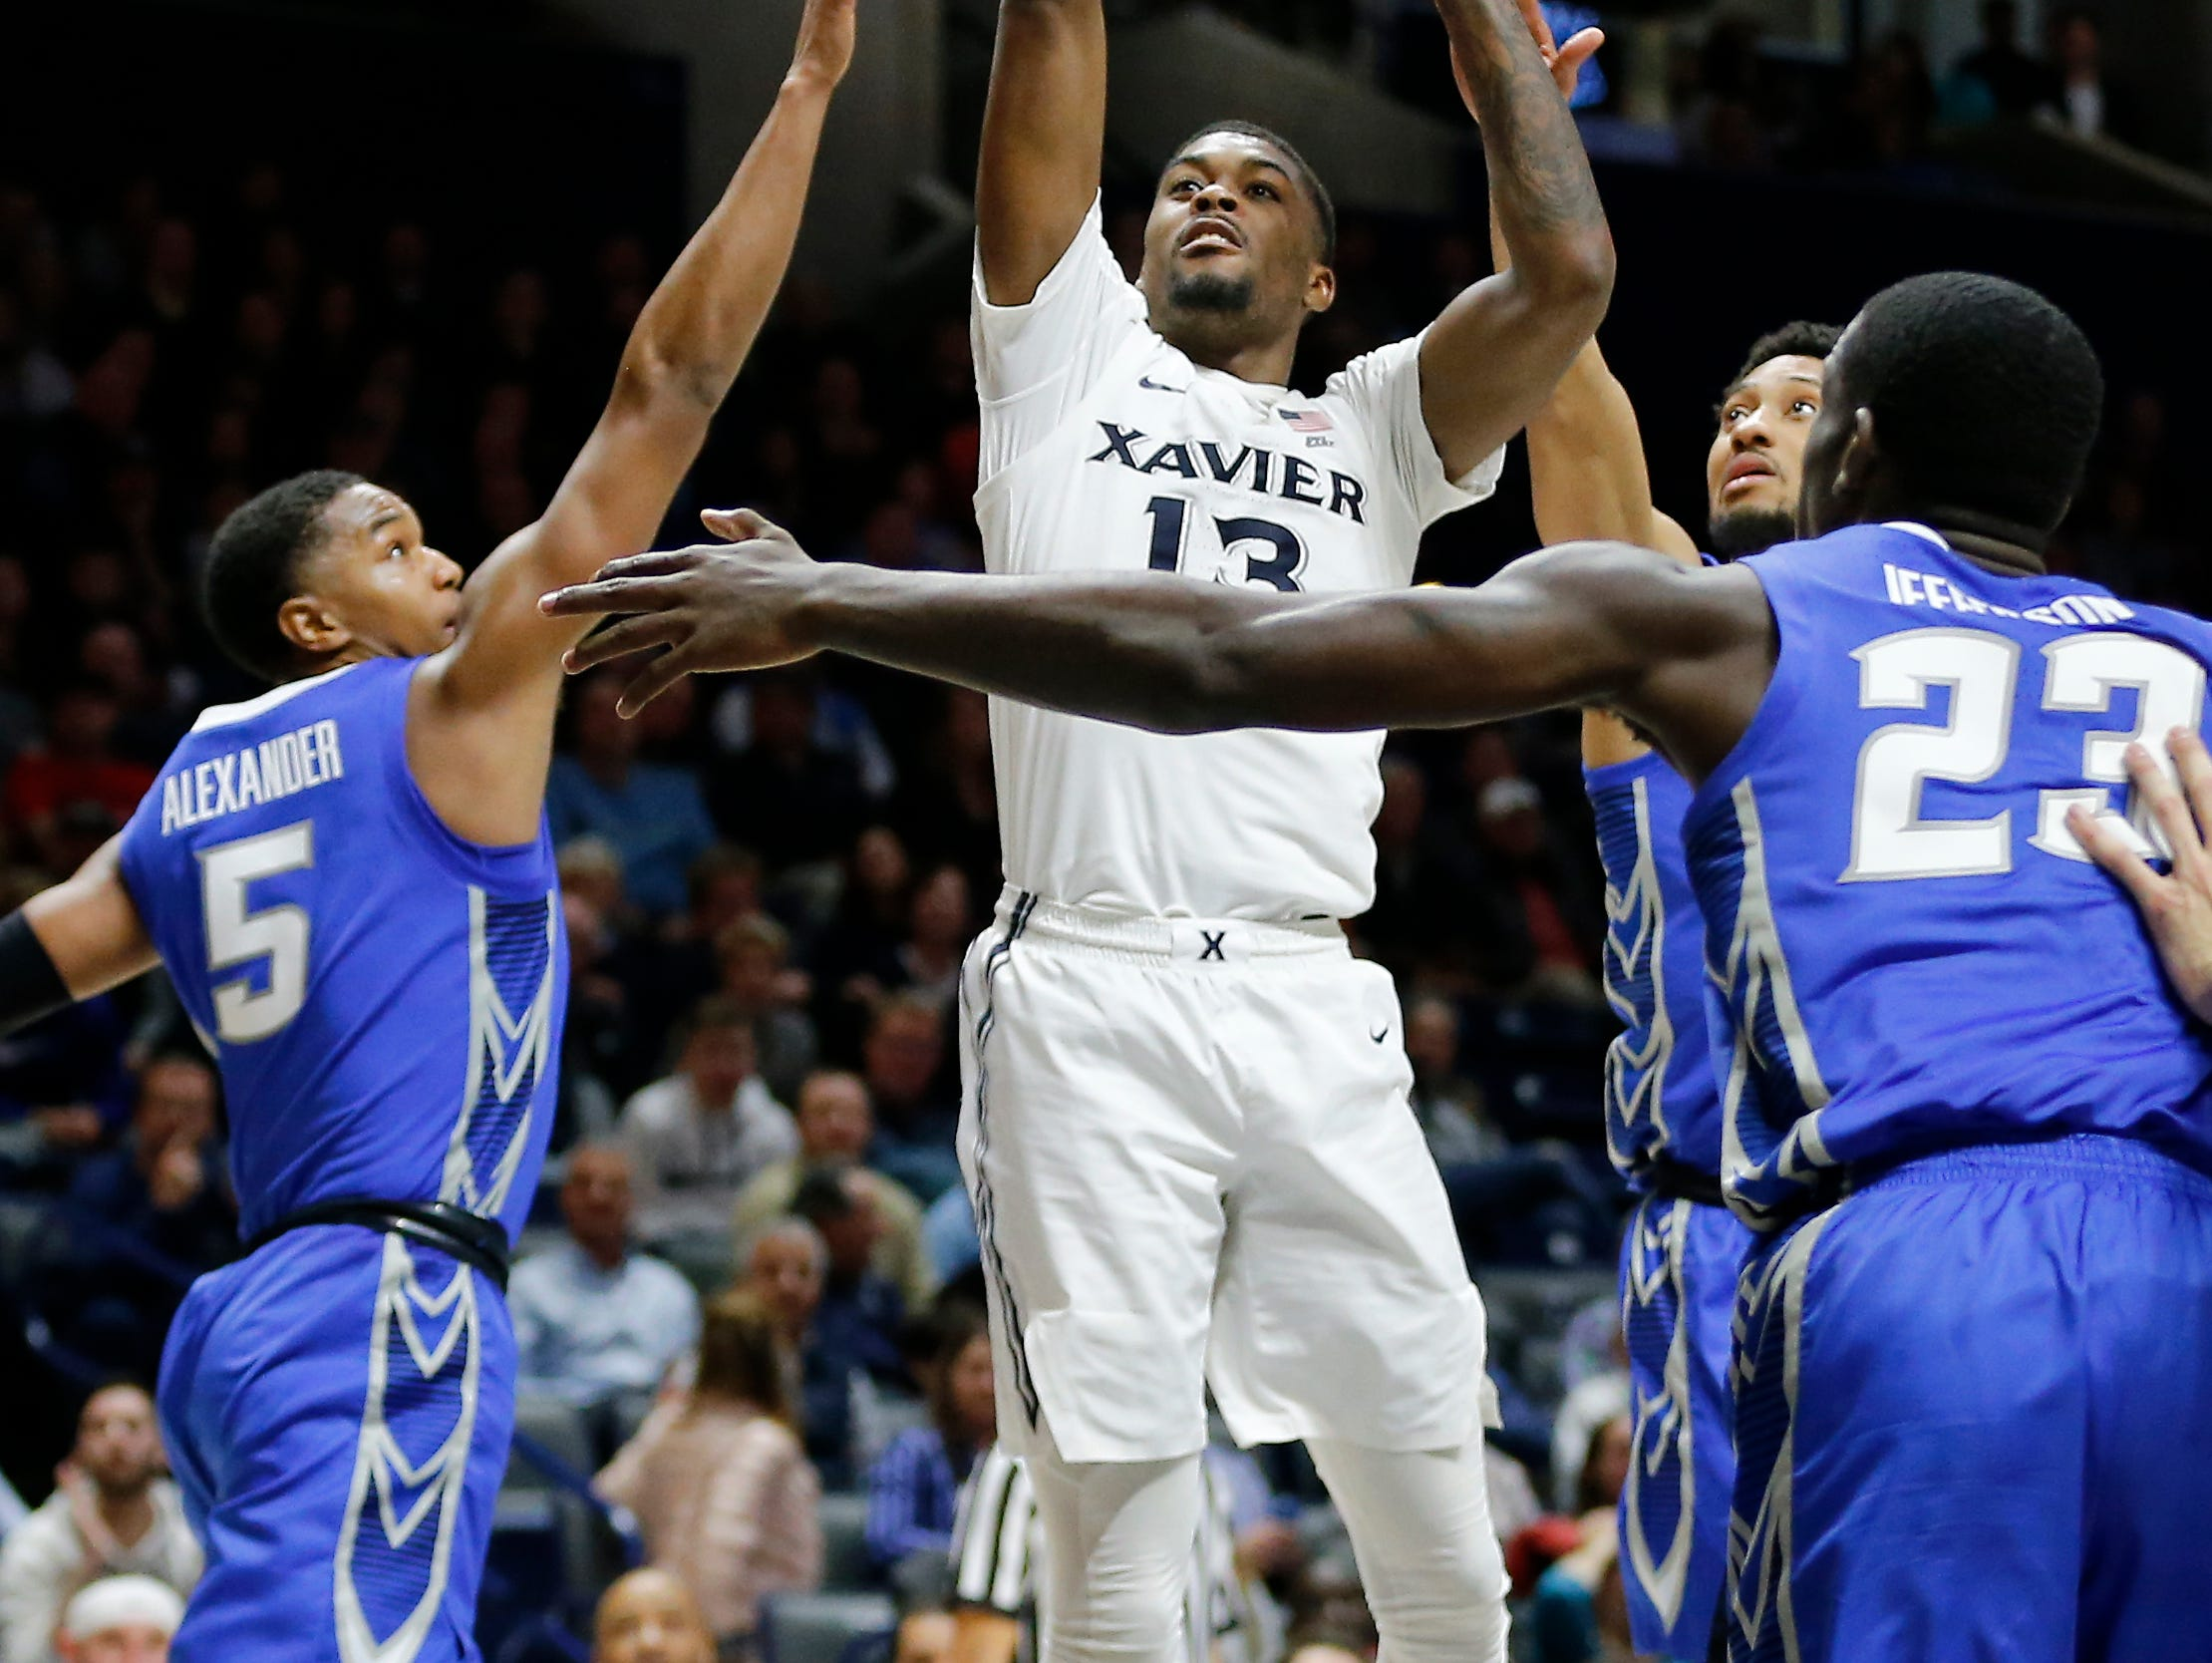 Xavier Musketeers forward Naji Marshall (13) shoots a short shot in the second half of the NCAA Big East Conference basketball game between the Xavier Musketeers and the Creighton Bluejays at Xavier's Cintas Center in Cincinnati on Thursday, Feb. 14, 2019. Xavier broke a 6-game losing streak with a 64-61 overtime win over Creighton.